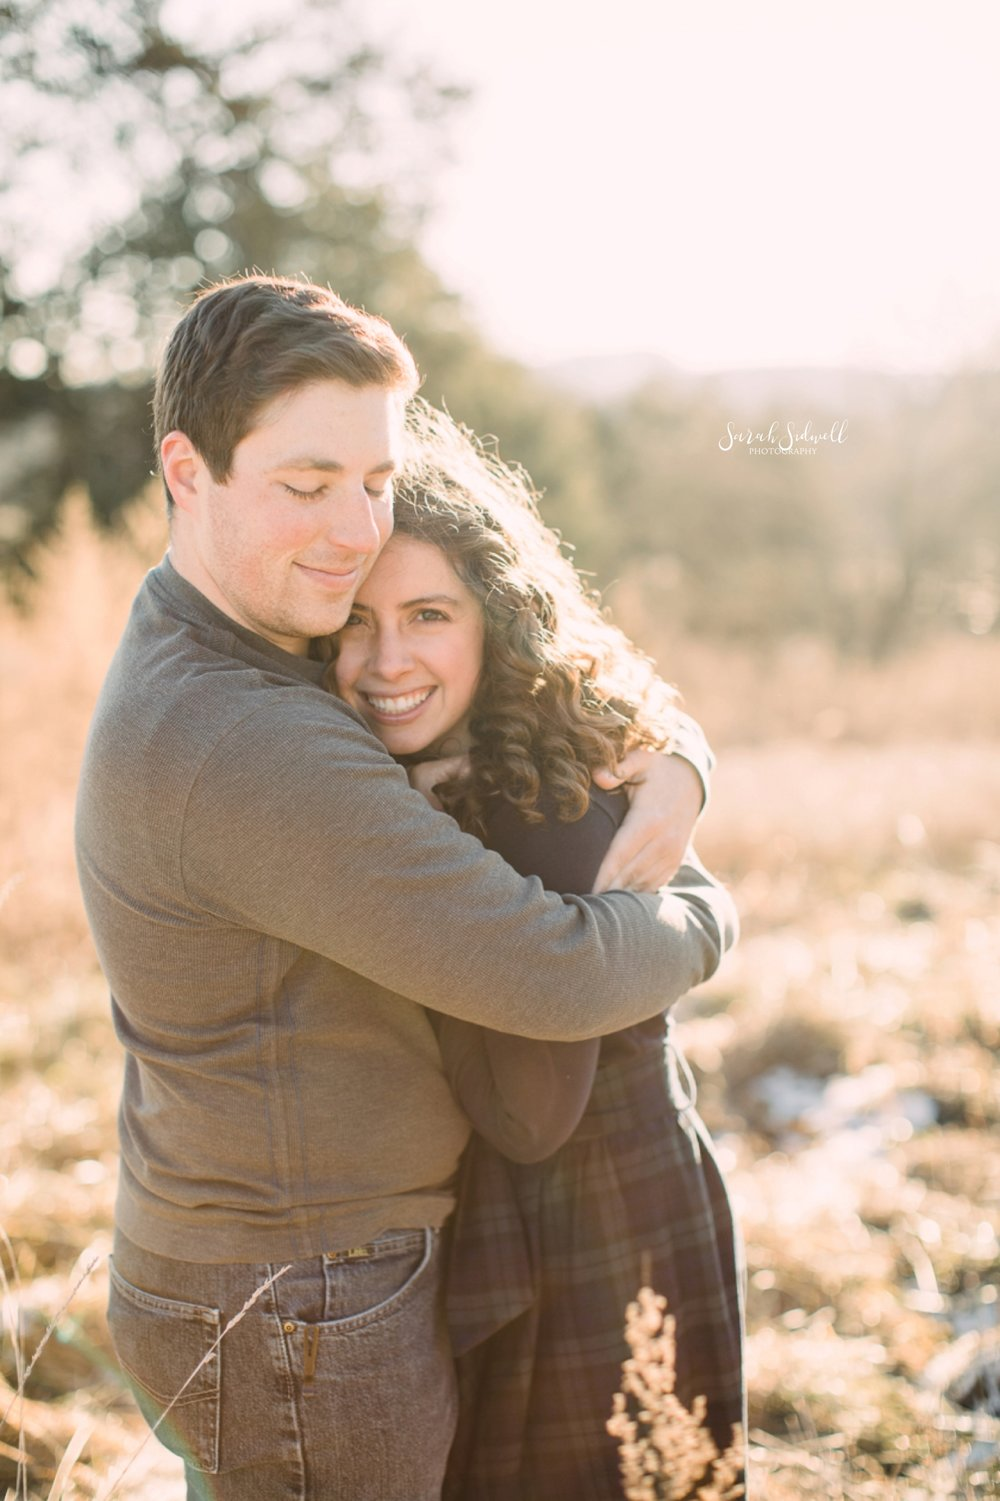 A man hugs his fiance for a photo taken by an Engagement Photographer in Nashville.